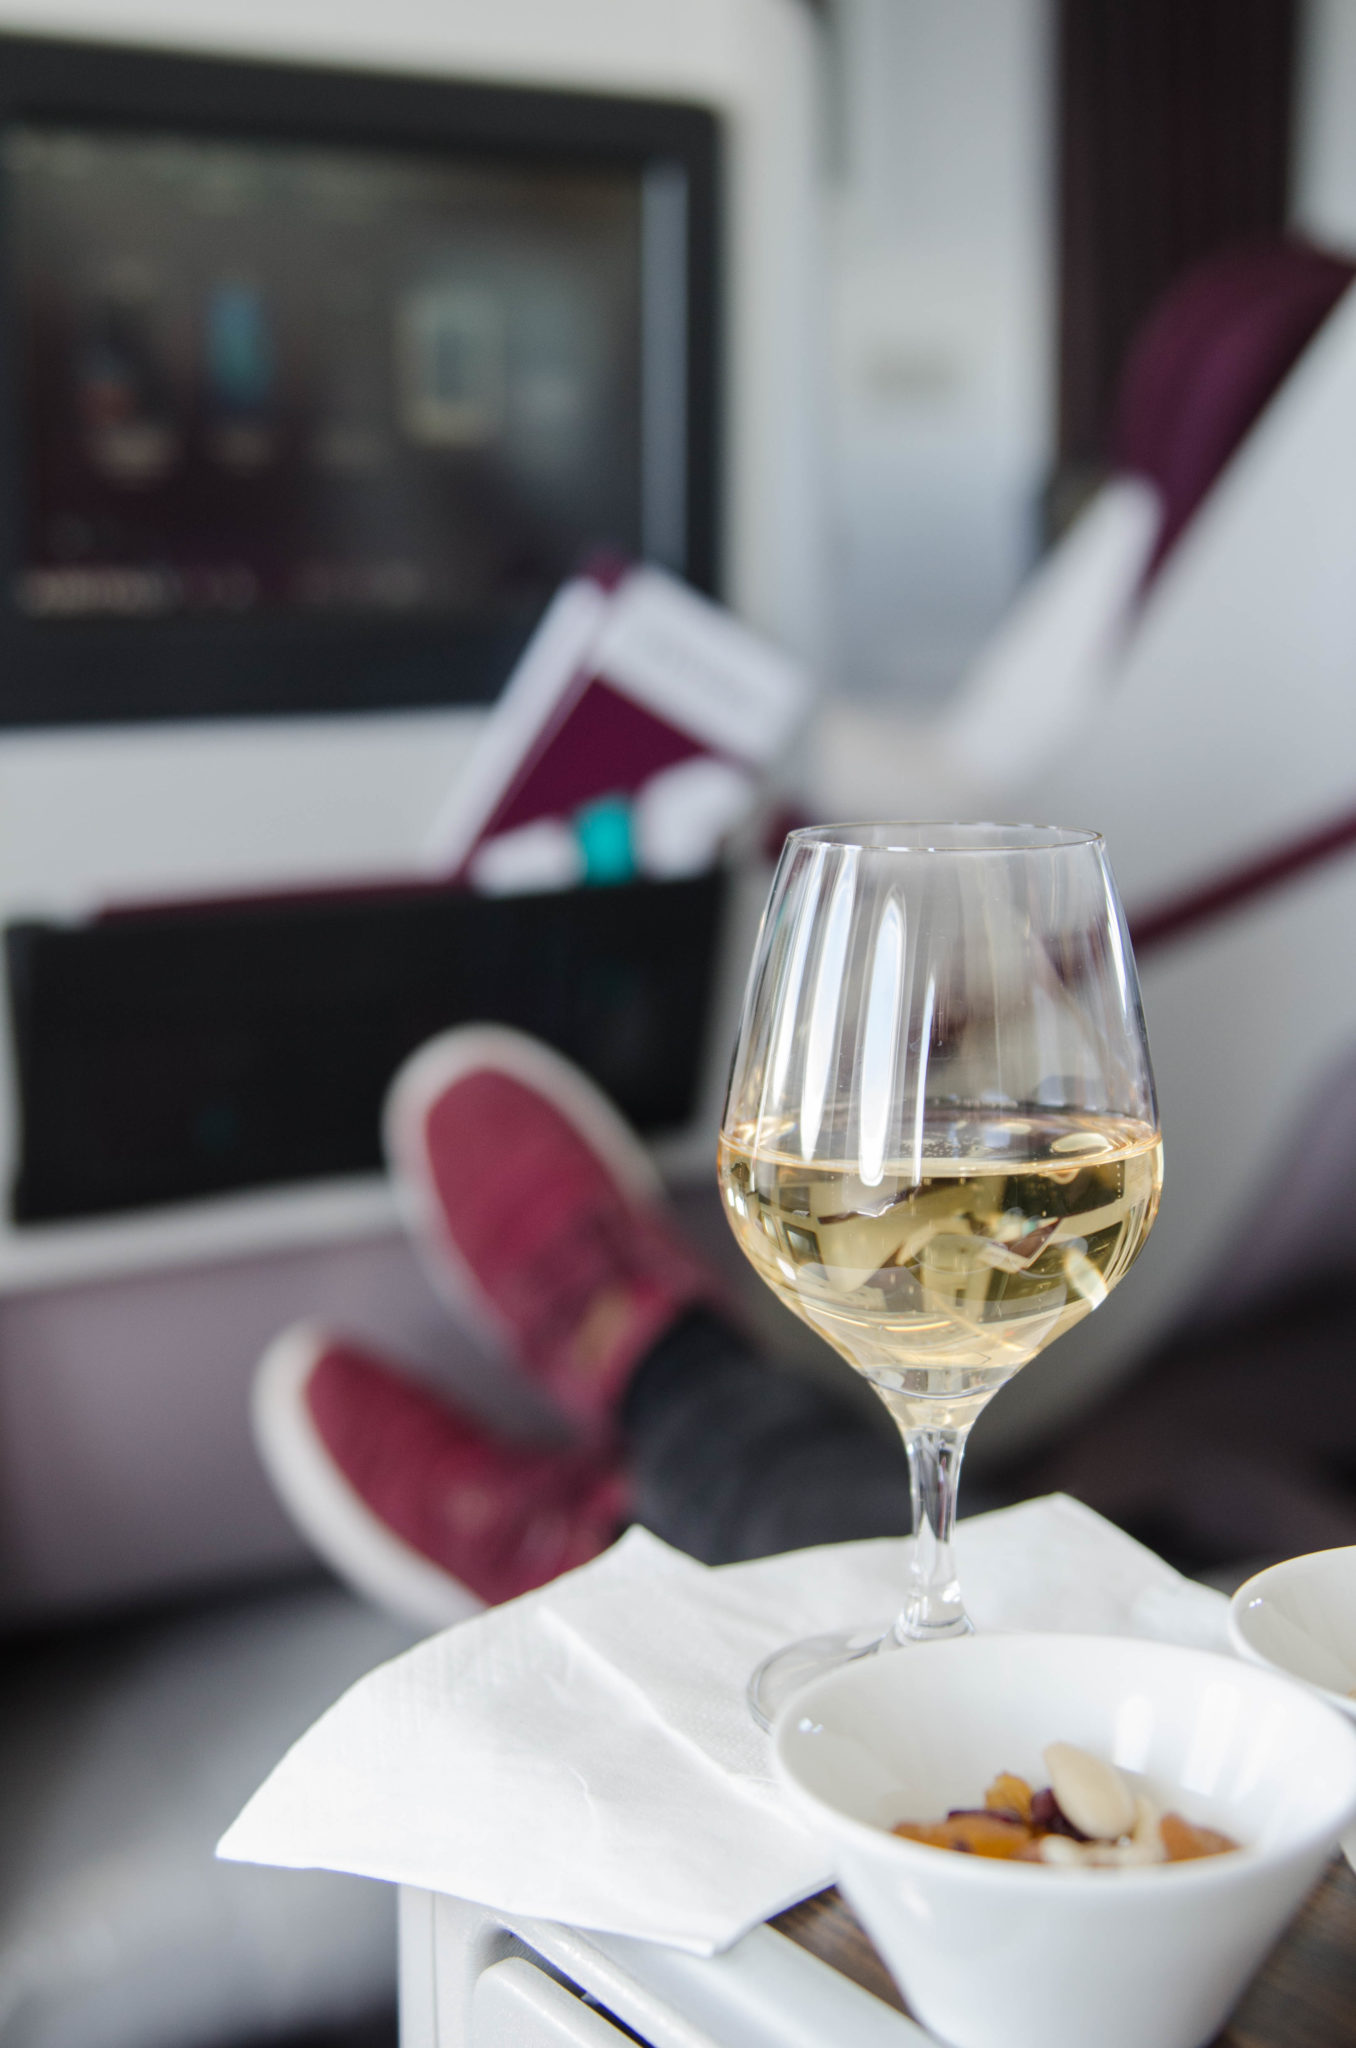 Air Italy Business Class auf dem Flug von Mailand nach New York